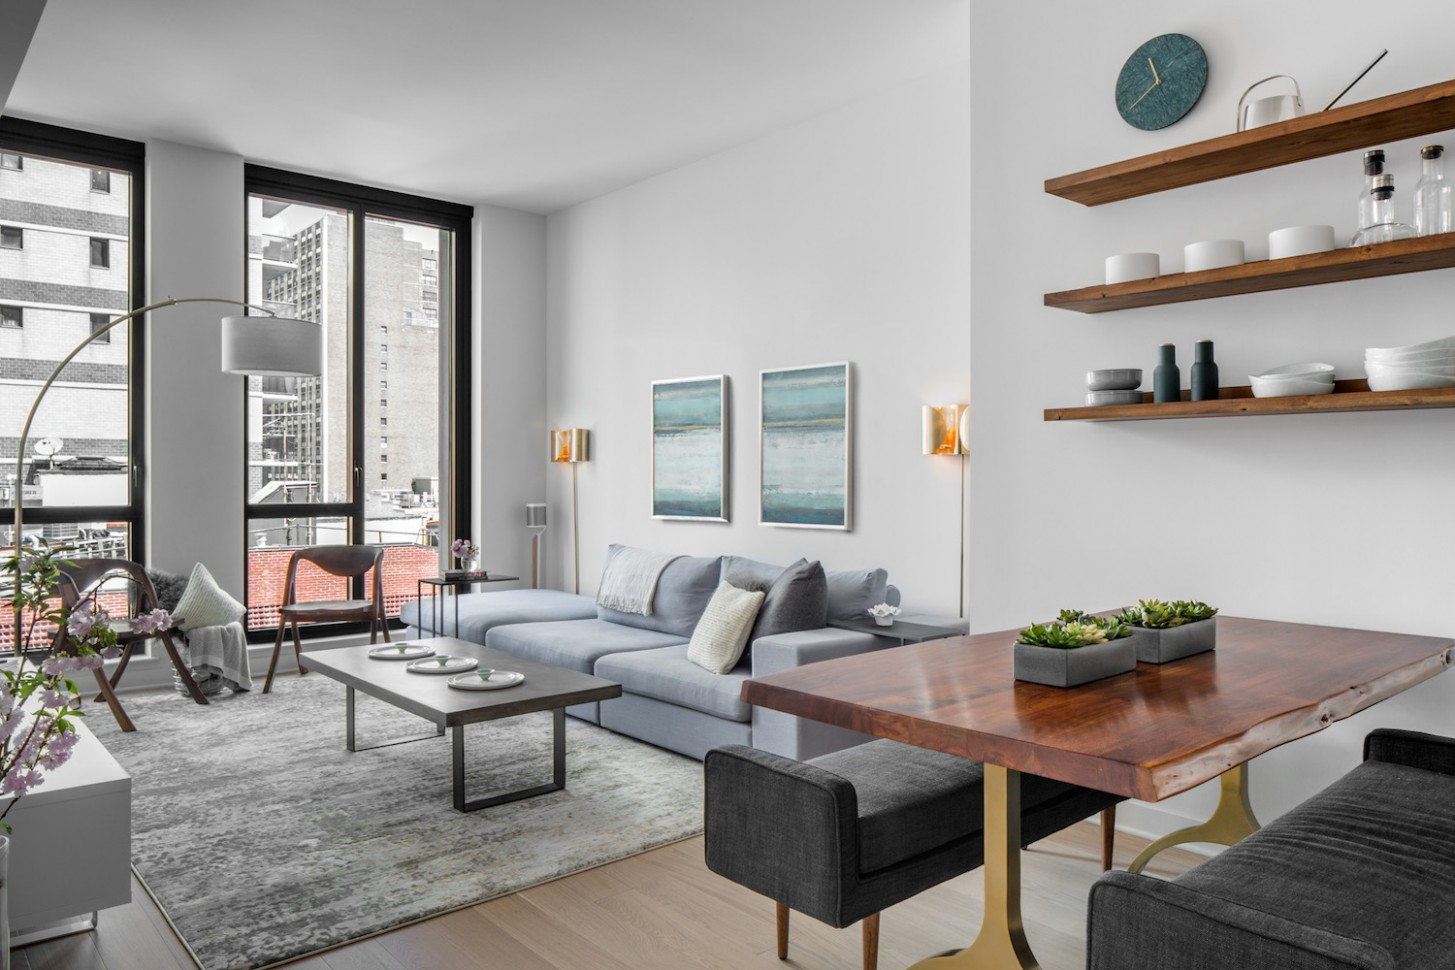 Before & After: A Well-Manicured Minimalist Apartment  Décor Aid - Minimalist Apartment Decor Ideas